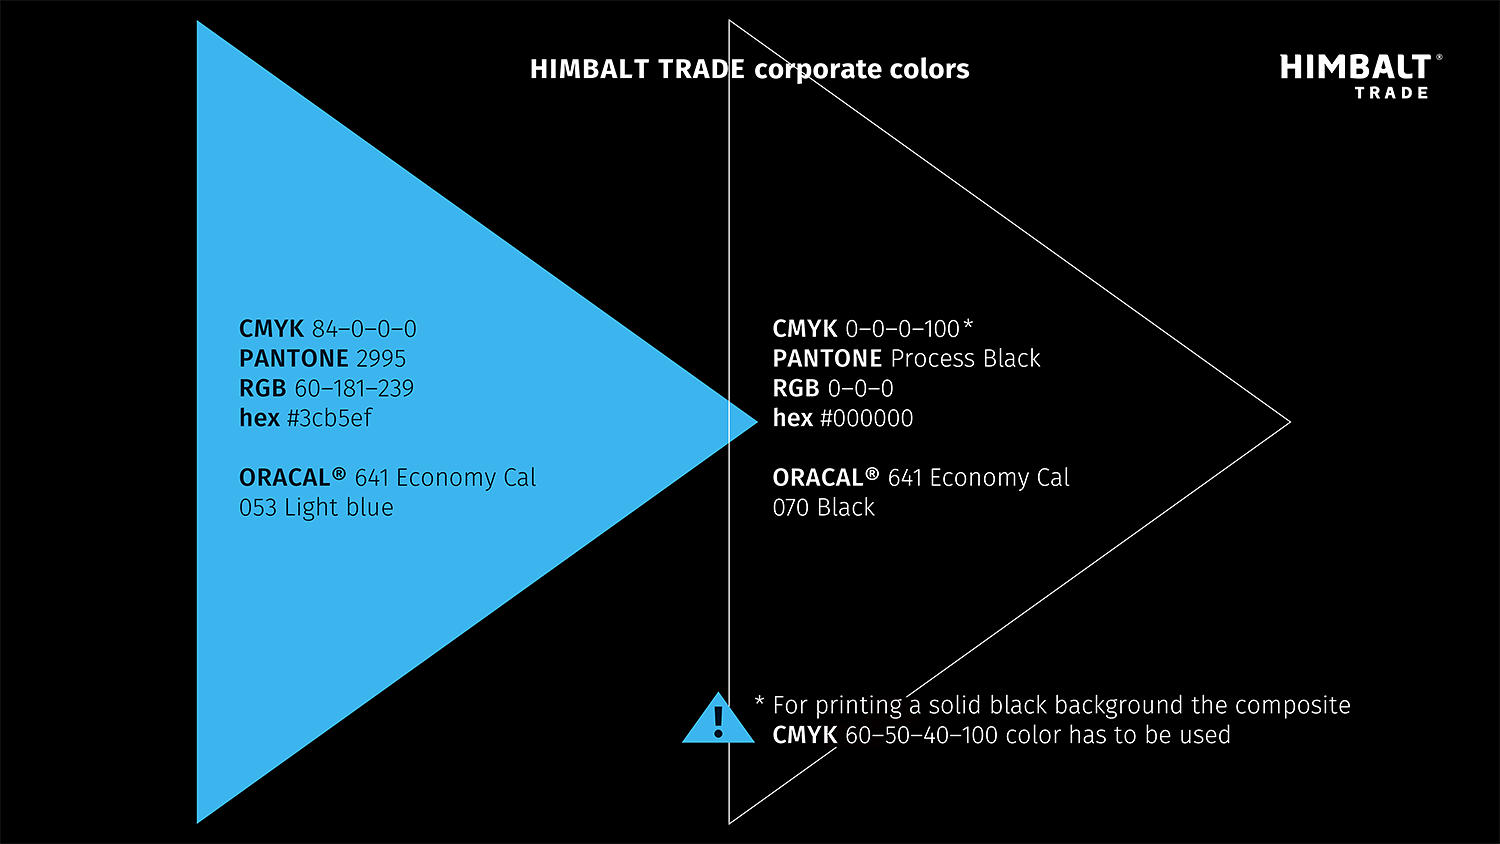 Corporate colors of the Himbalt Trade petroleum products transporting company.